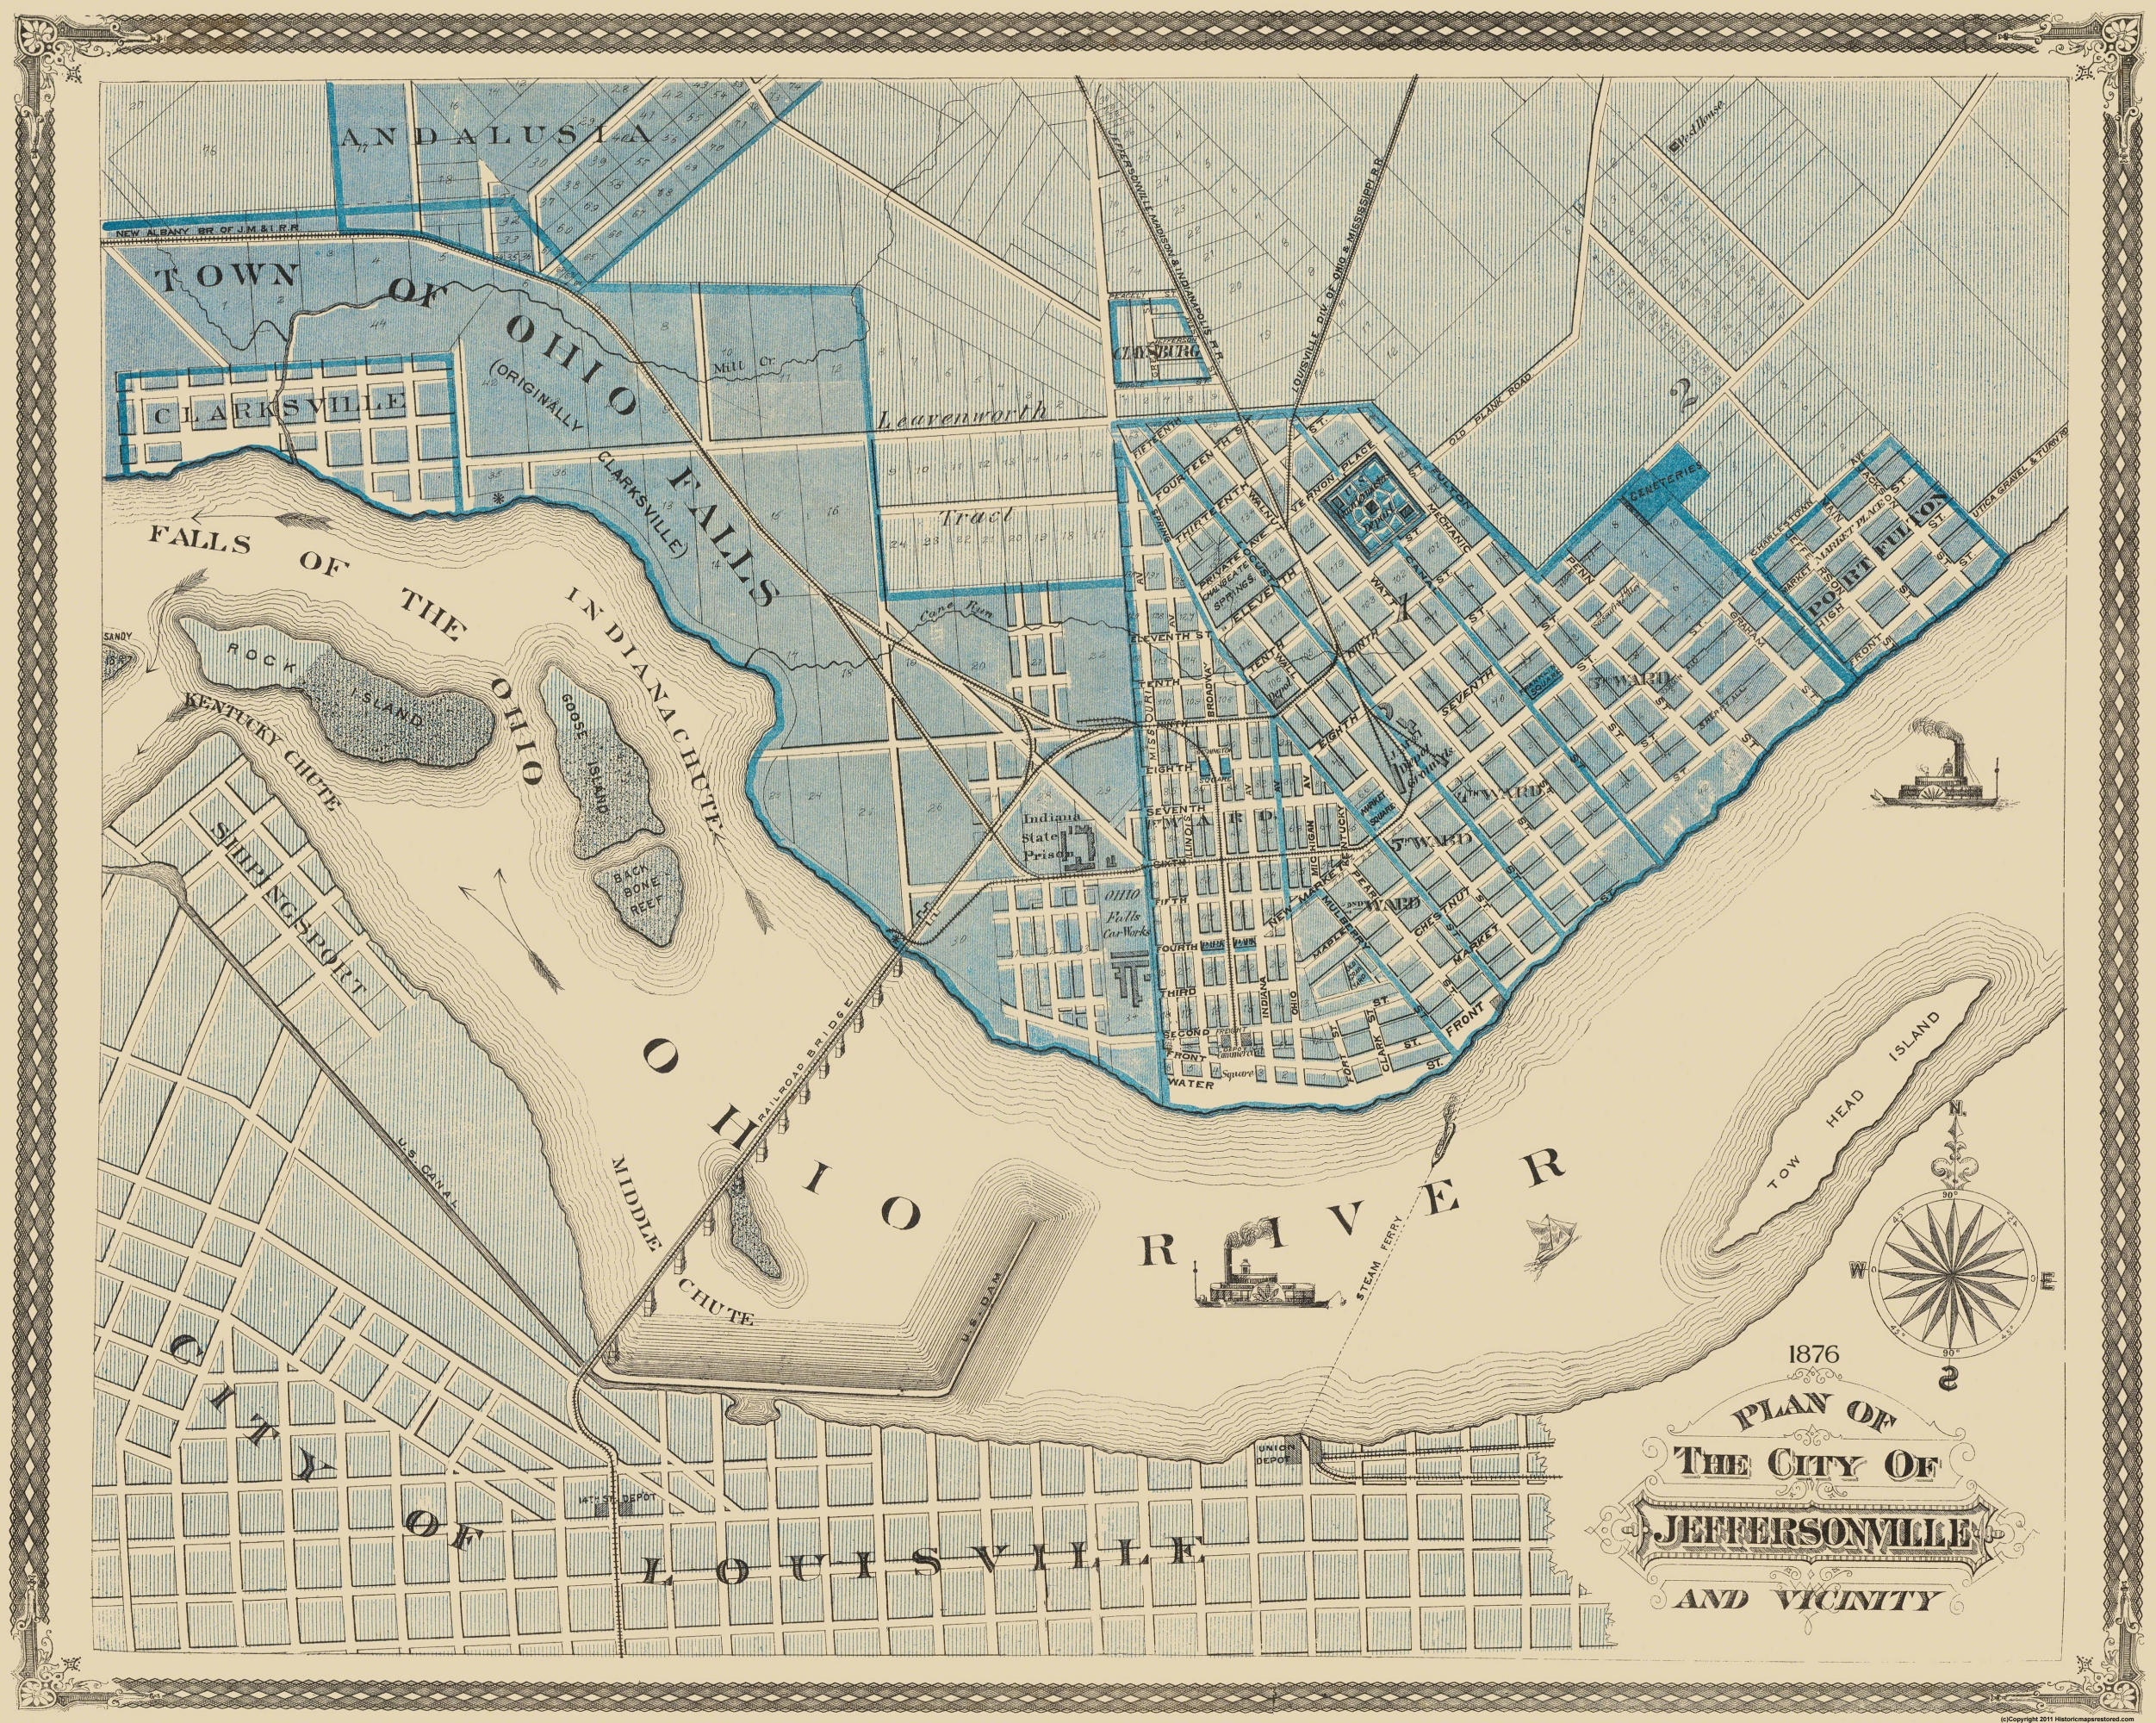 Old City Map - Jeffersonville Indiana - 1876